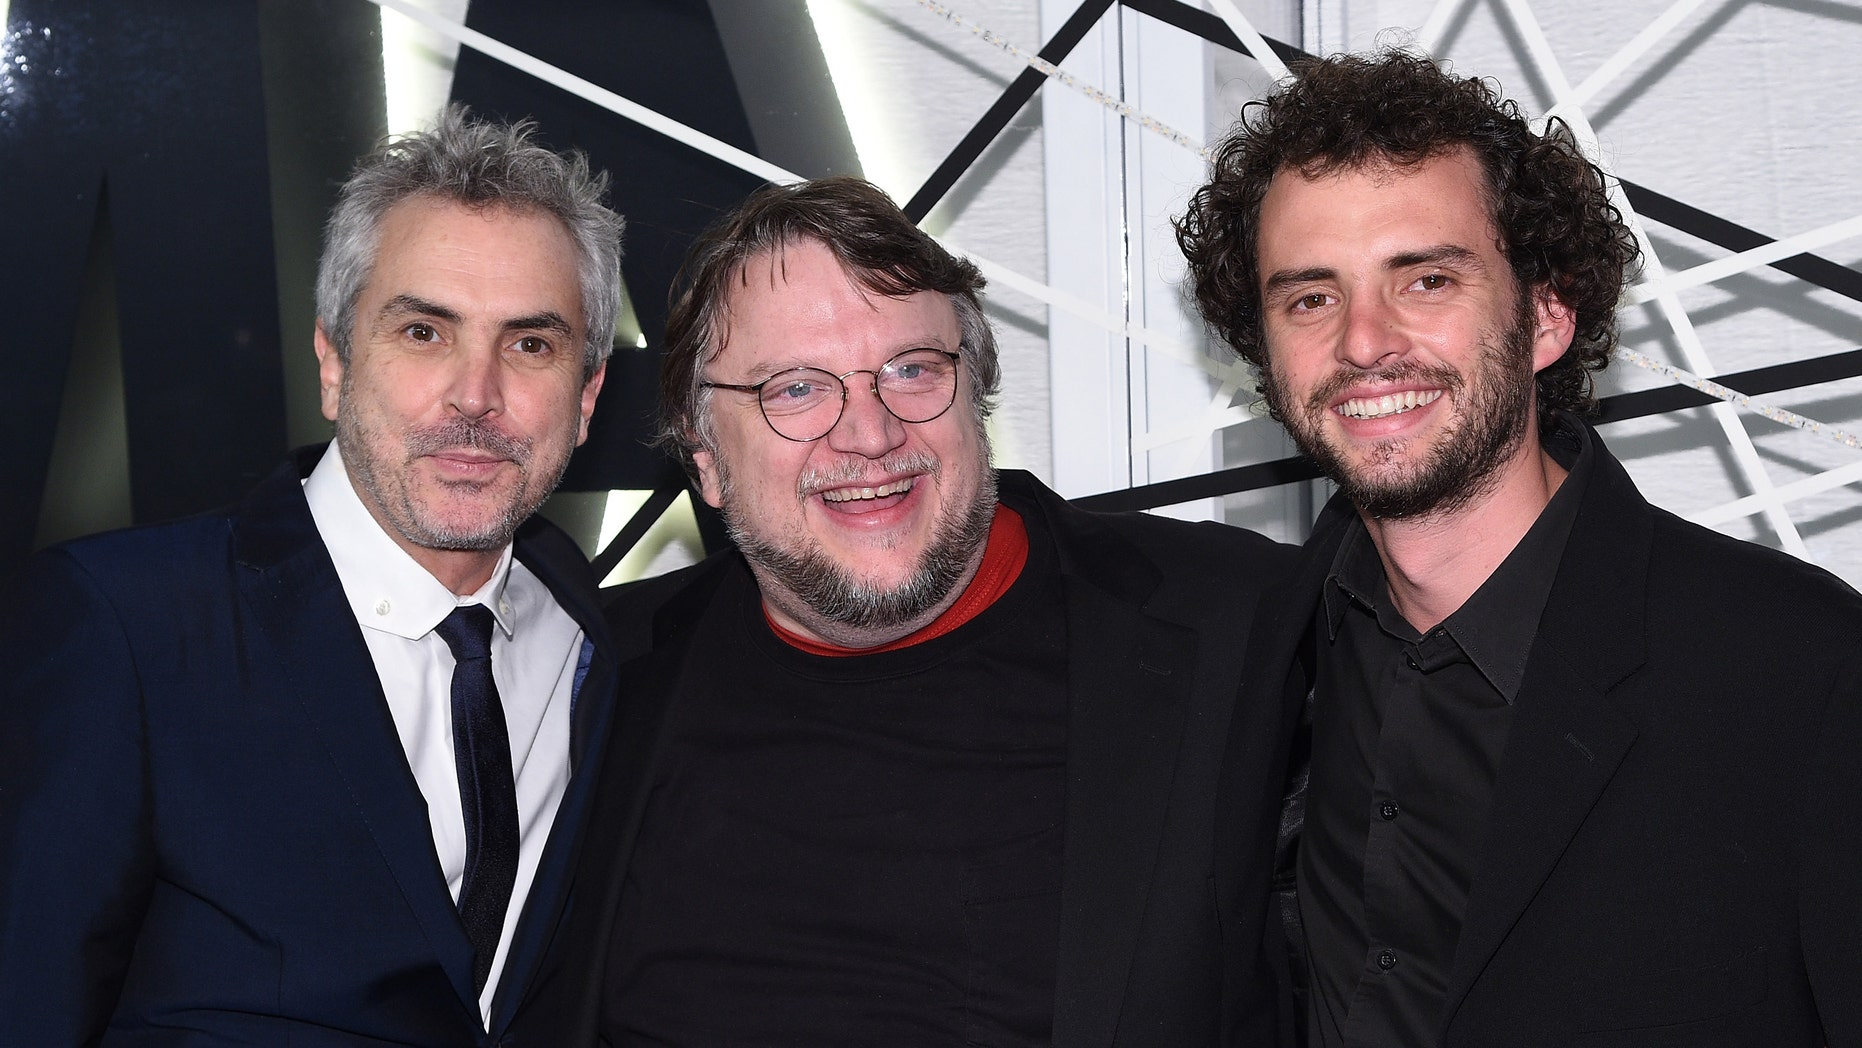 NEW YORK, NY - NOVEMBER 10:  (L-R) Alfonso Cuaron, Guillermo del Toro, and Jonas Cuaron attend The Museum of Modern Art's 2014 Film Benefit Honoring Alfonso Cuaron at The Museum of Modern Art on November 10, 2014 in New York City.  (Photo by Andrew H. Walker/Getty Images)